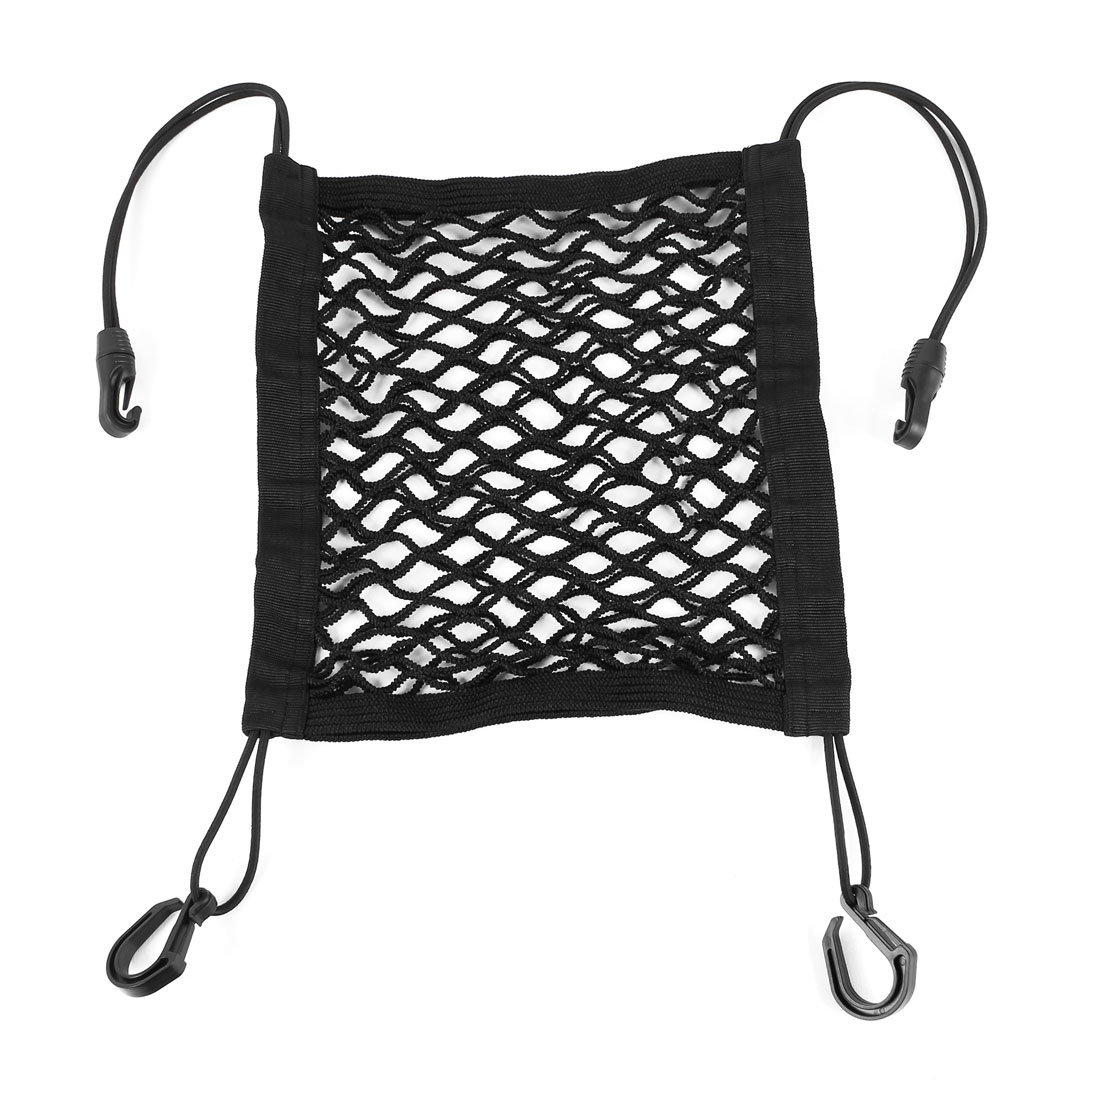 Luggage Storage Elastic Car Mesh Bag Cargo Net Holder w Hooks